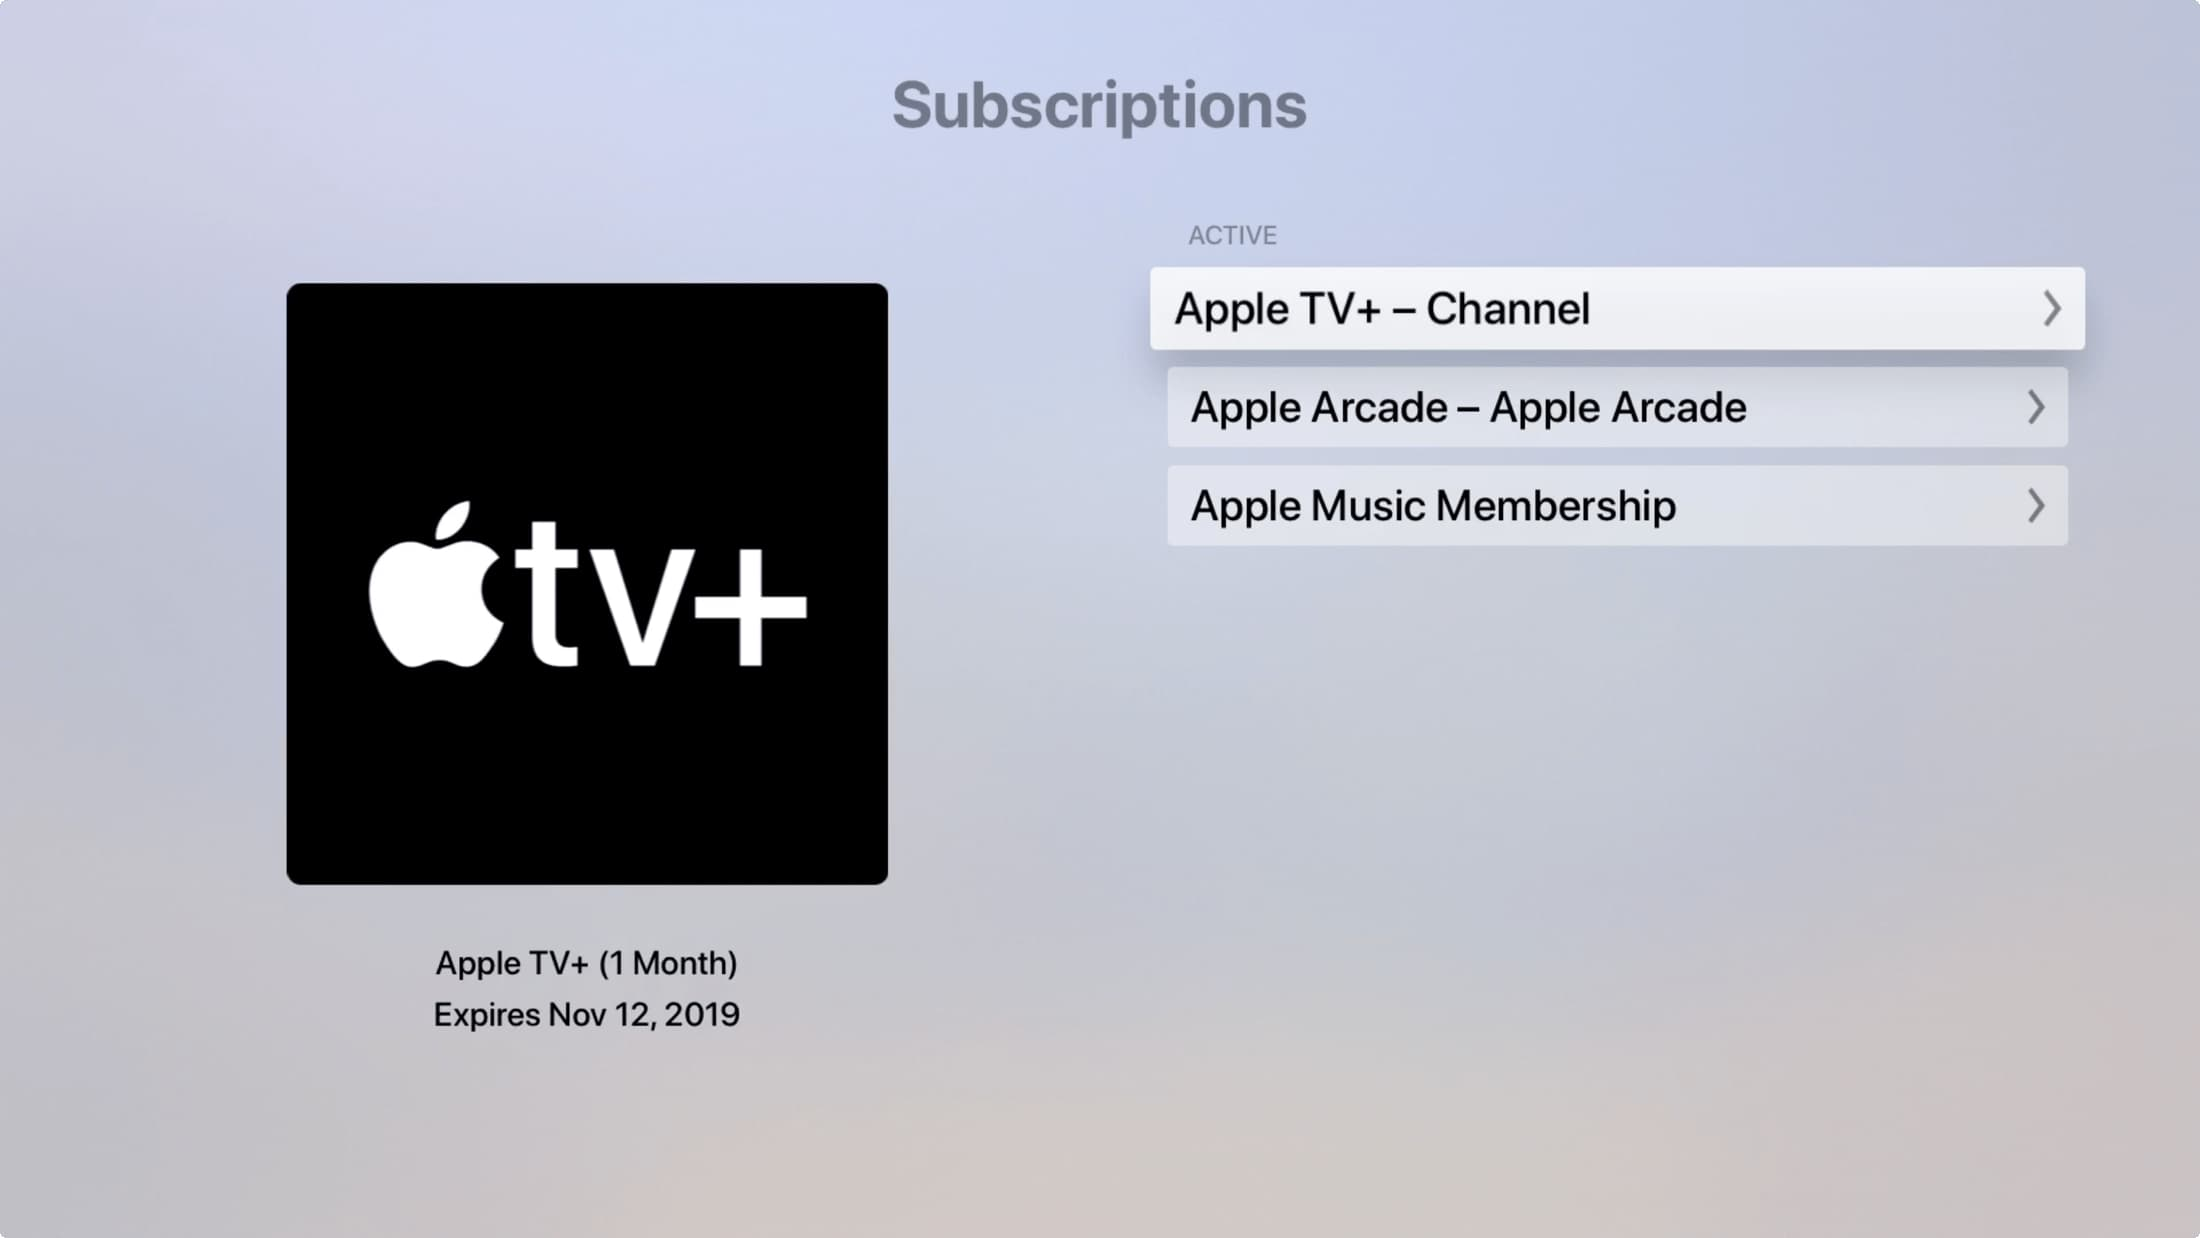 Subscriptions on Apple TV